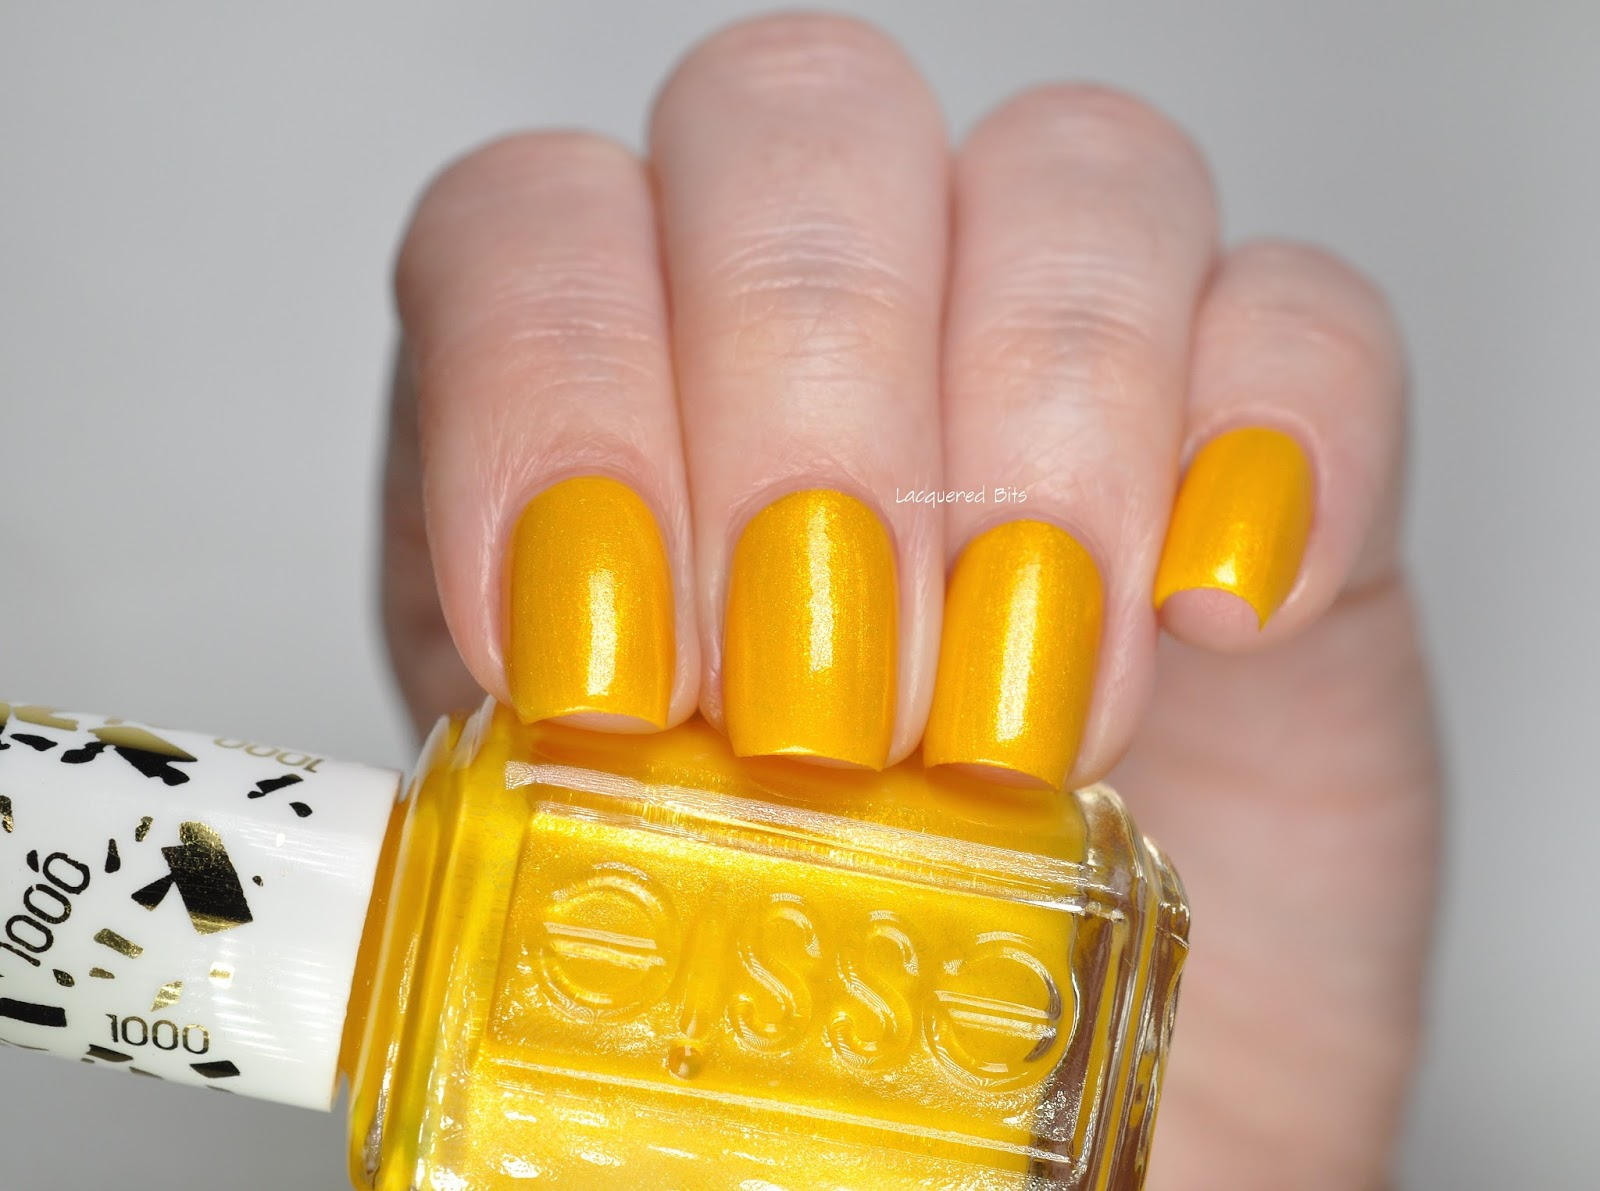 Essie's 1000th shade Aim To Misbehave Swatches & Review